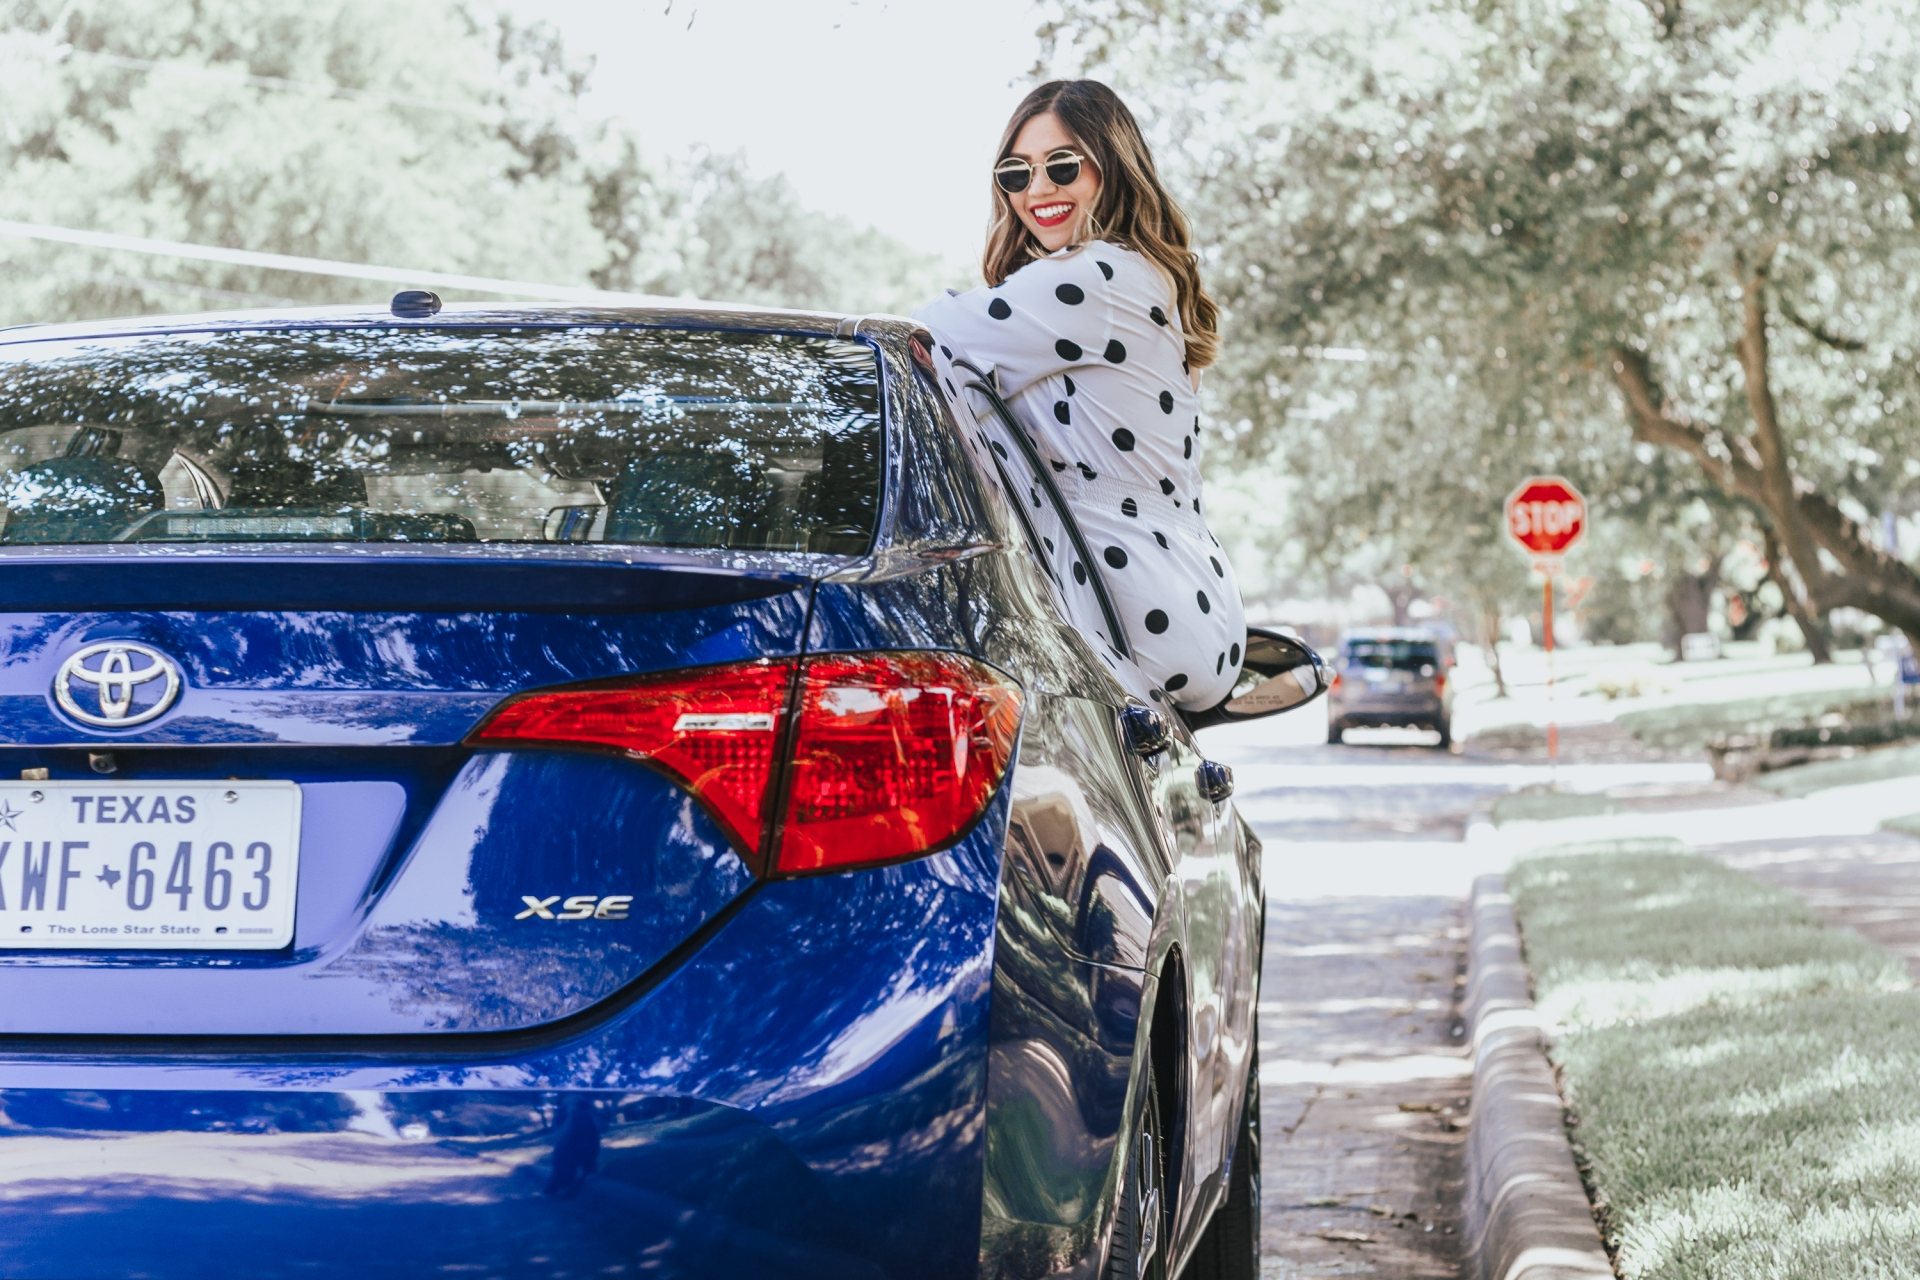 2018 Toyota Corolla XSE Car Review NA-KD Polka Dot Cut Out Detail Playsuit Romper Diffeyewear Daisy Sunglasses Straw Hat